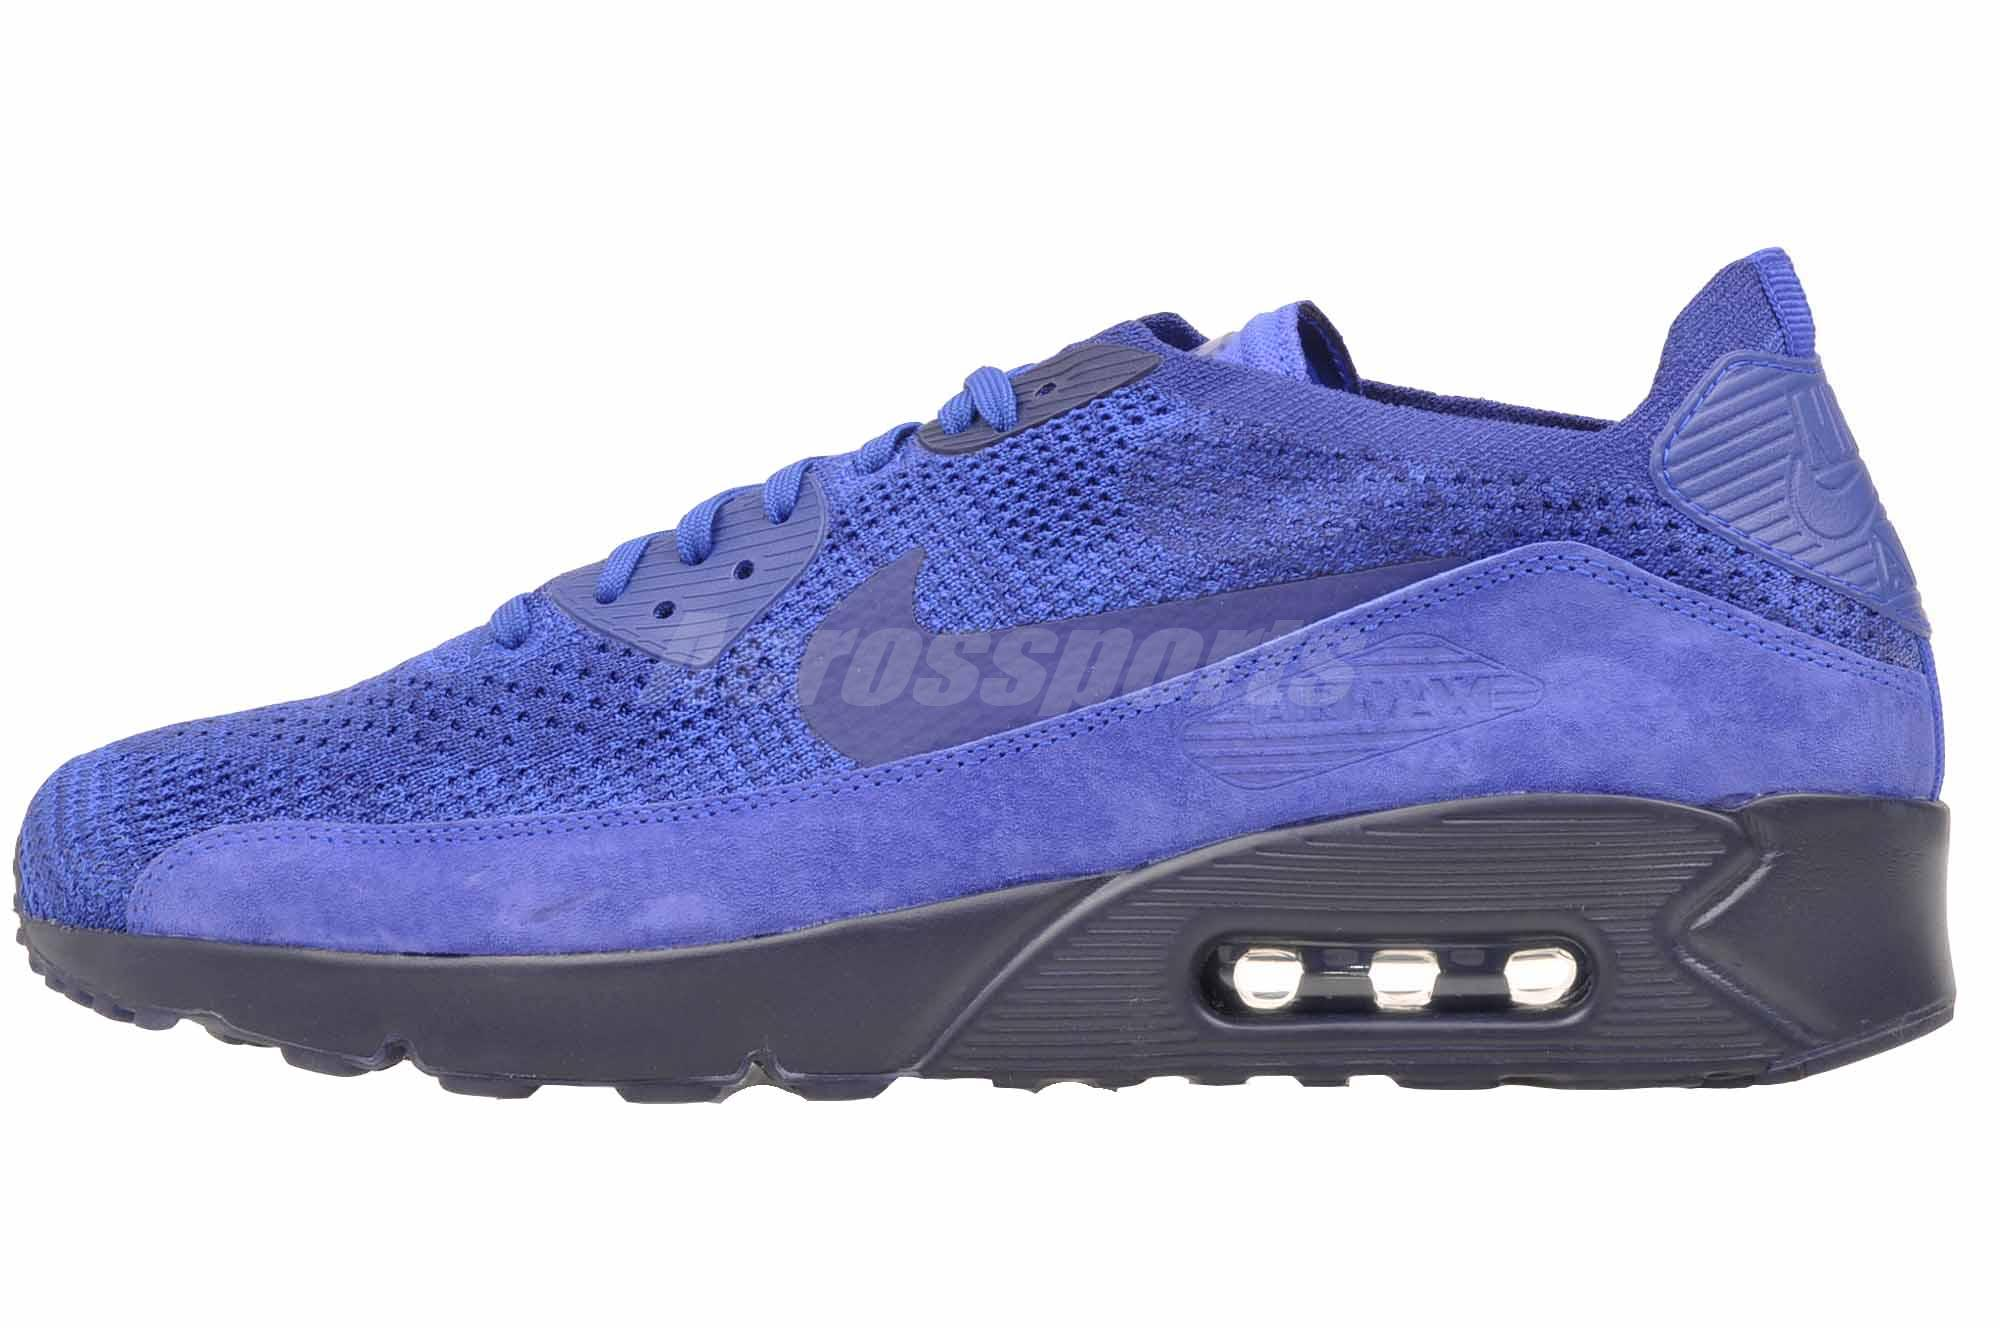 Details about Nike Air Max 90 Ultra 2.0 Flyknit Running Mens Shoes Racer  Blue 875943-402 ad66b163c